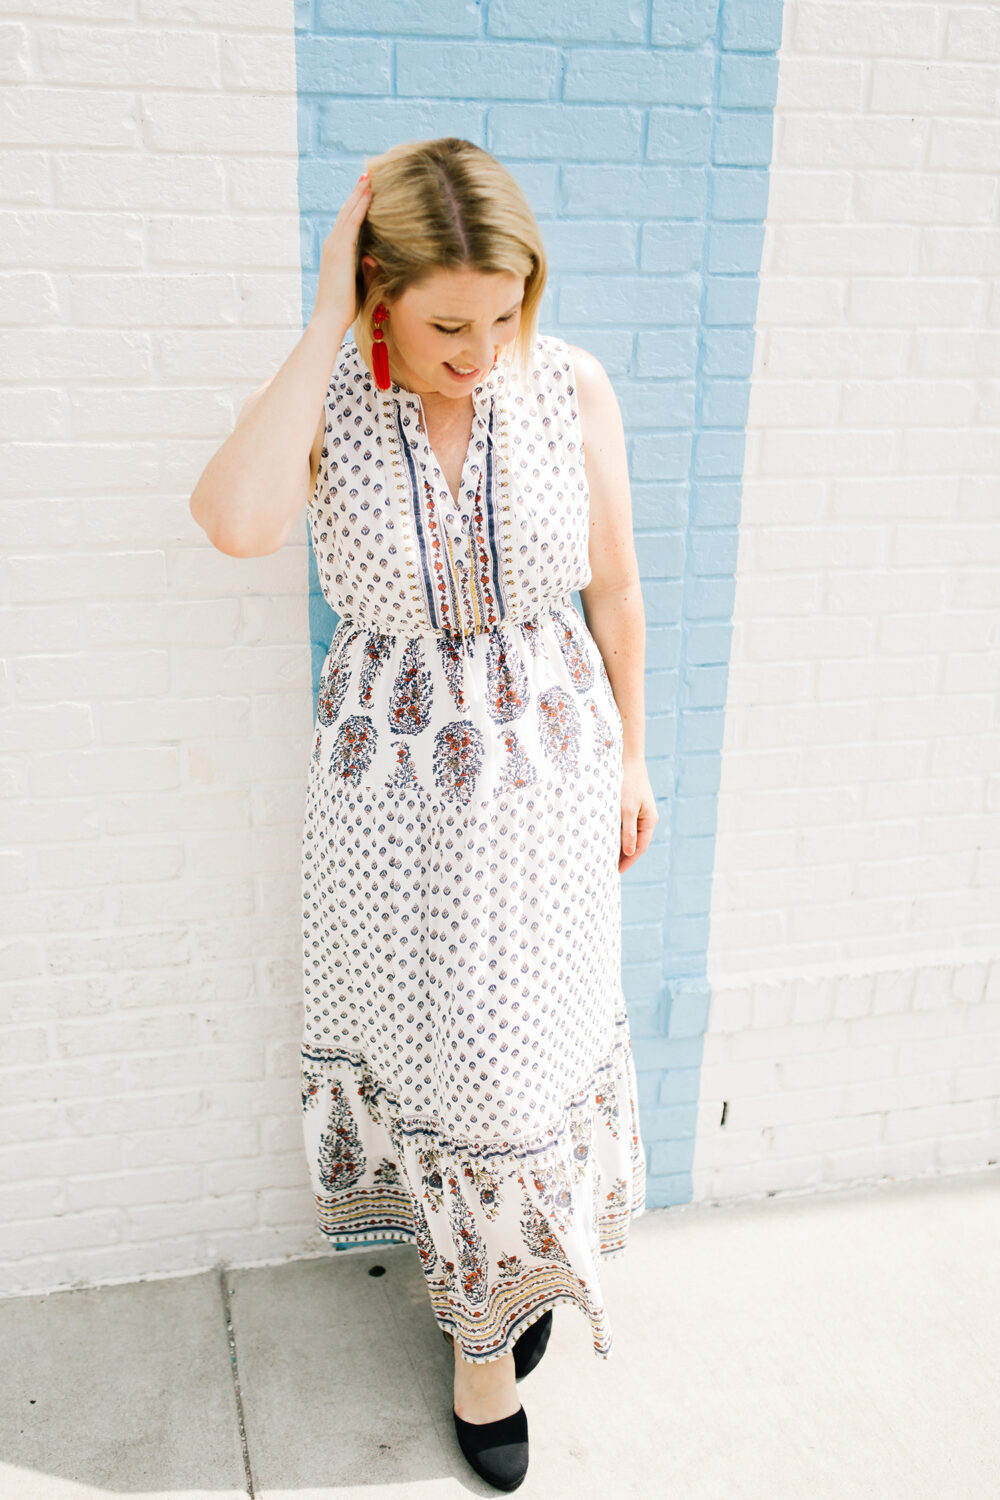 Looking for a versatile fall maxi dress? This one will go from summer to fall perfectly.....with just a few layers!